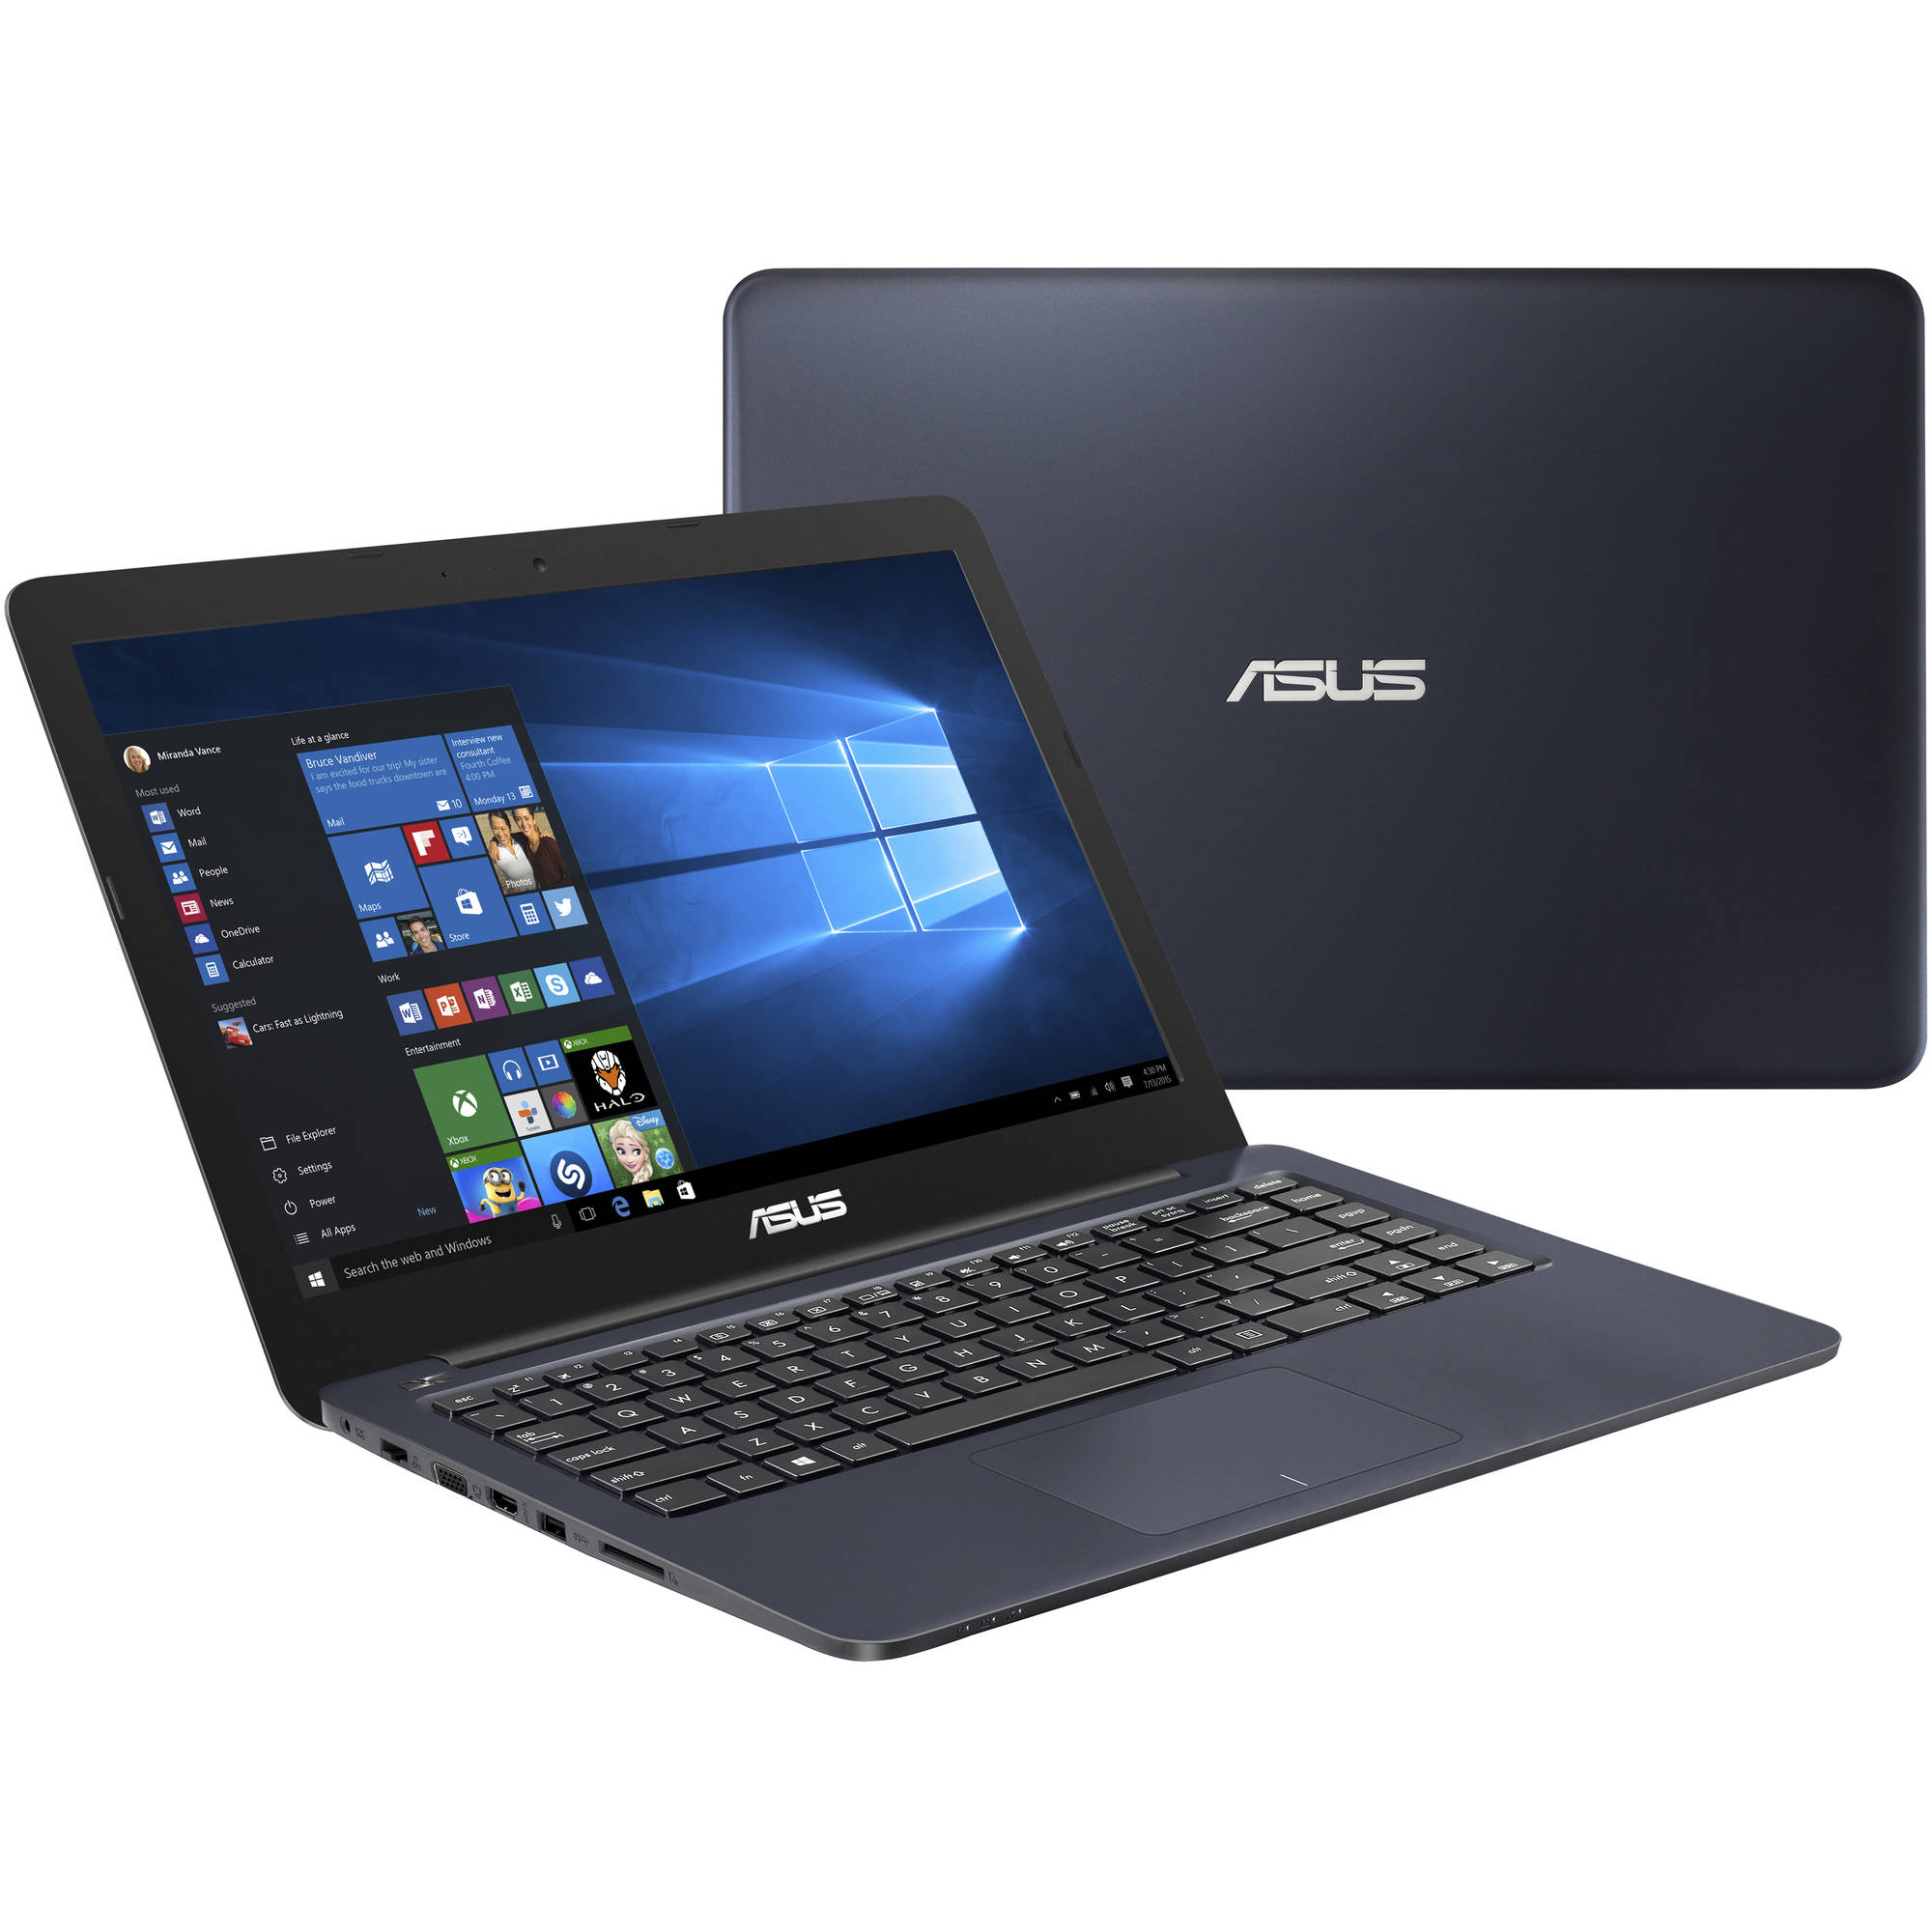 "Asus Dark Blue 14"" EEEBOOK E402SA-DS01-BL Laptop PC with Intel Celeron N3050 Dual-Core Processor, 2GB Memory, 32GB Flash Storage and Windows 10"